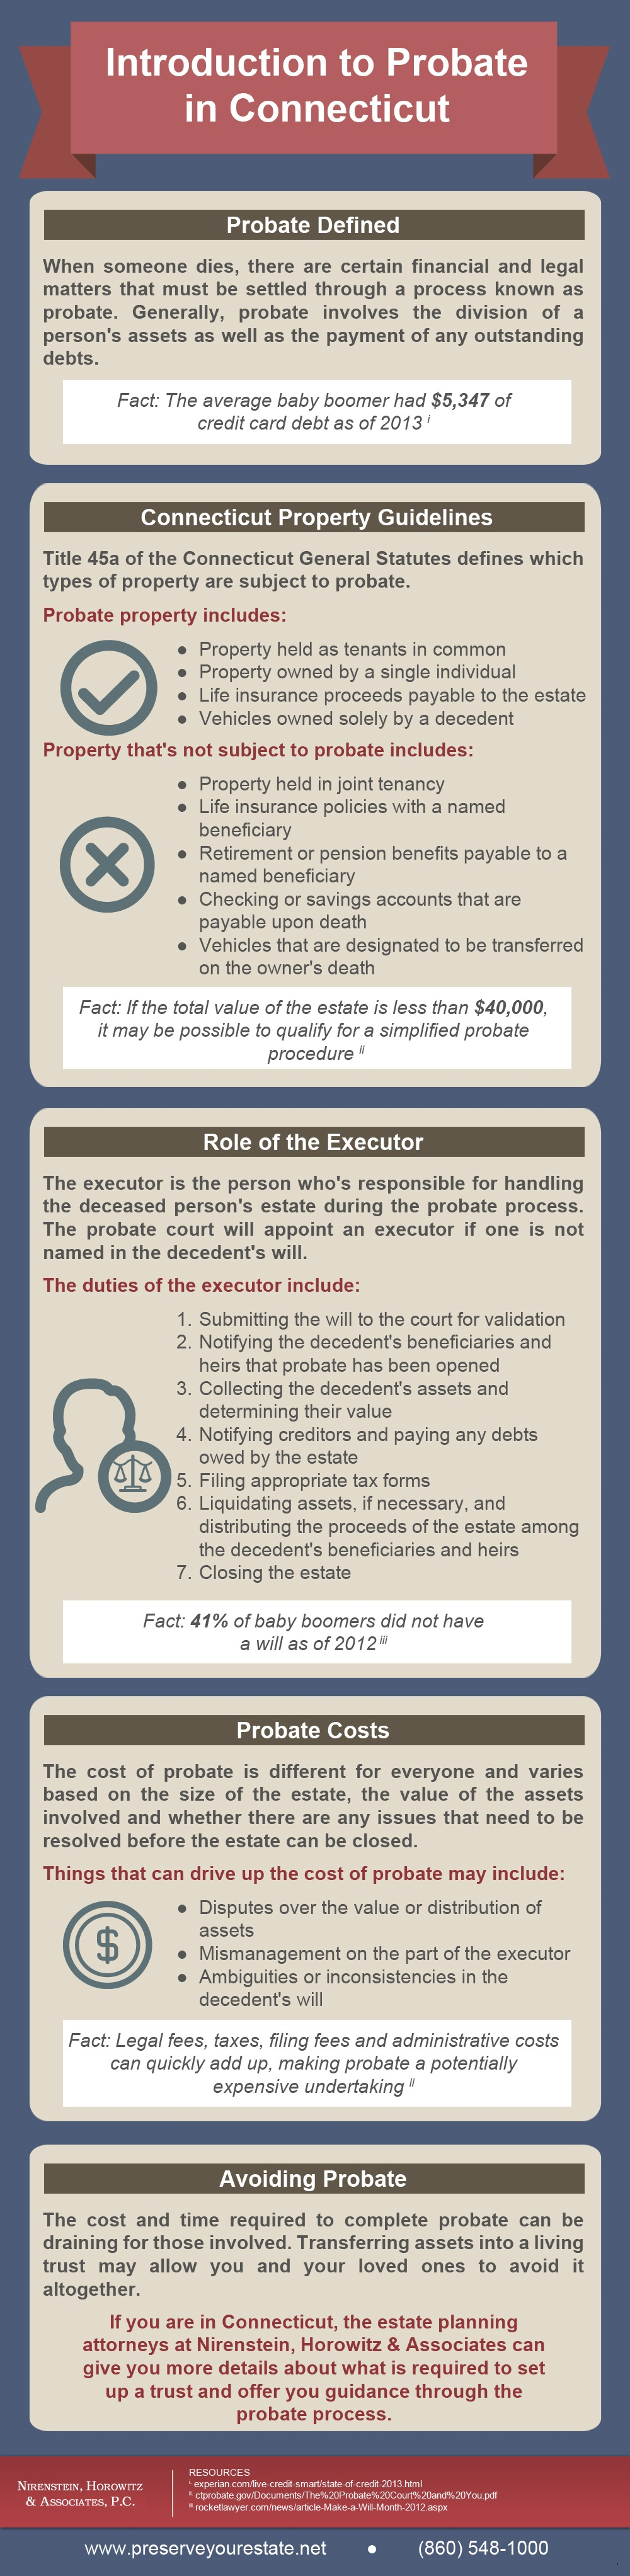 Introduction to Probate in Connecticut